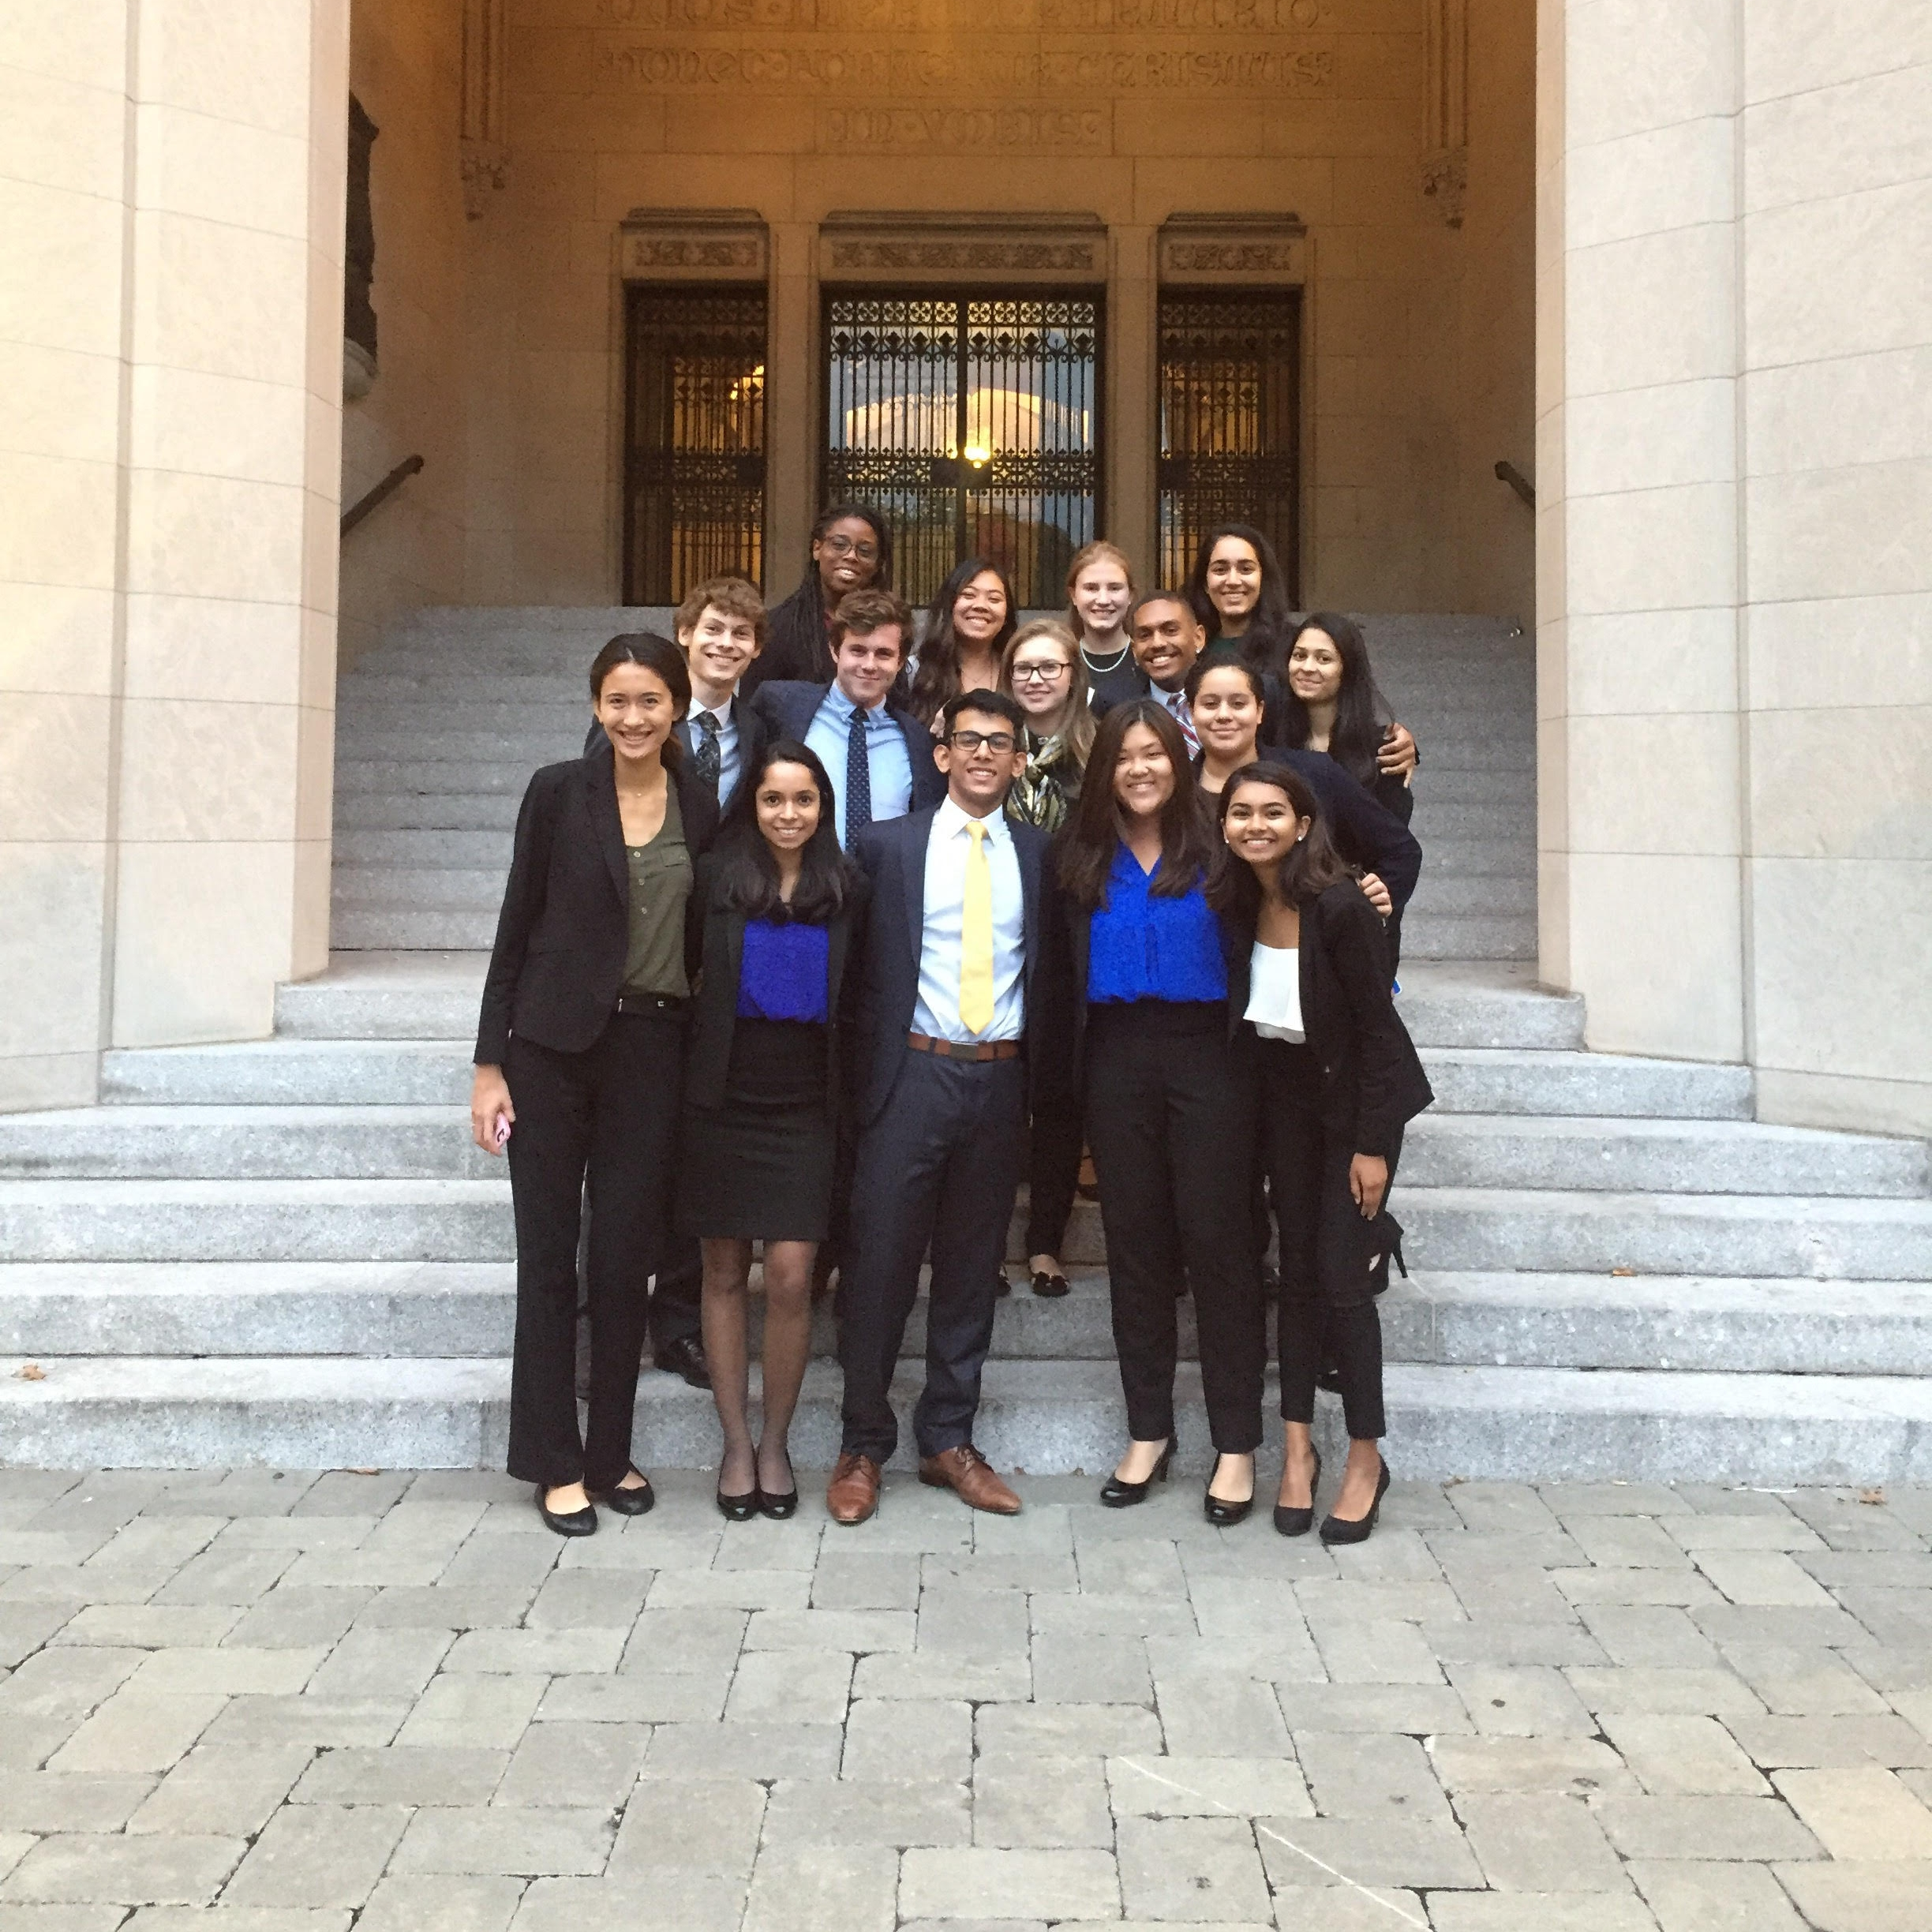 RUMTA's B and C Teams at Fordham                                   Top row, from left to right: Ajoke Adetula, Christine Tran, Samantha Berg, Aabha Joshi           Middle row: Michael Luckhowec, Emmett Laurie, Michelle Fishman, Ryan Ruffin, Veronica Bido, Shivangi Patel                                   Bottom row: Katie Dale, Anu Chugh, Karan Malhotra, Lucy Huang, Hasin Tasneem